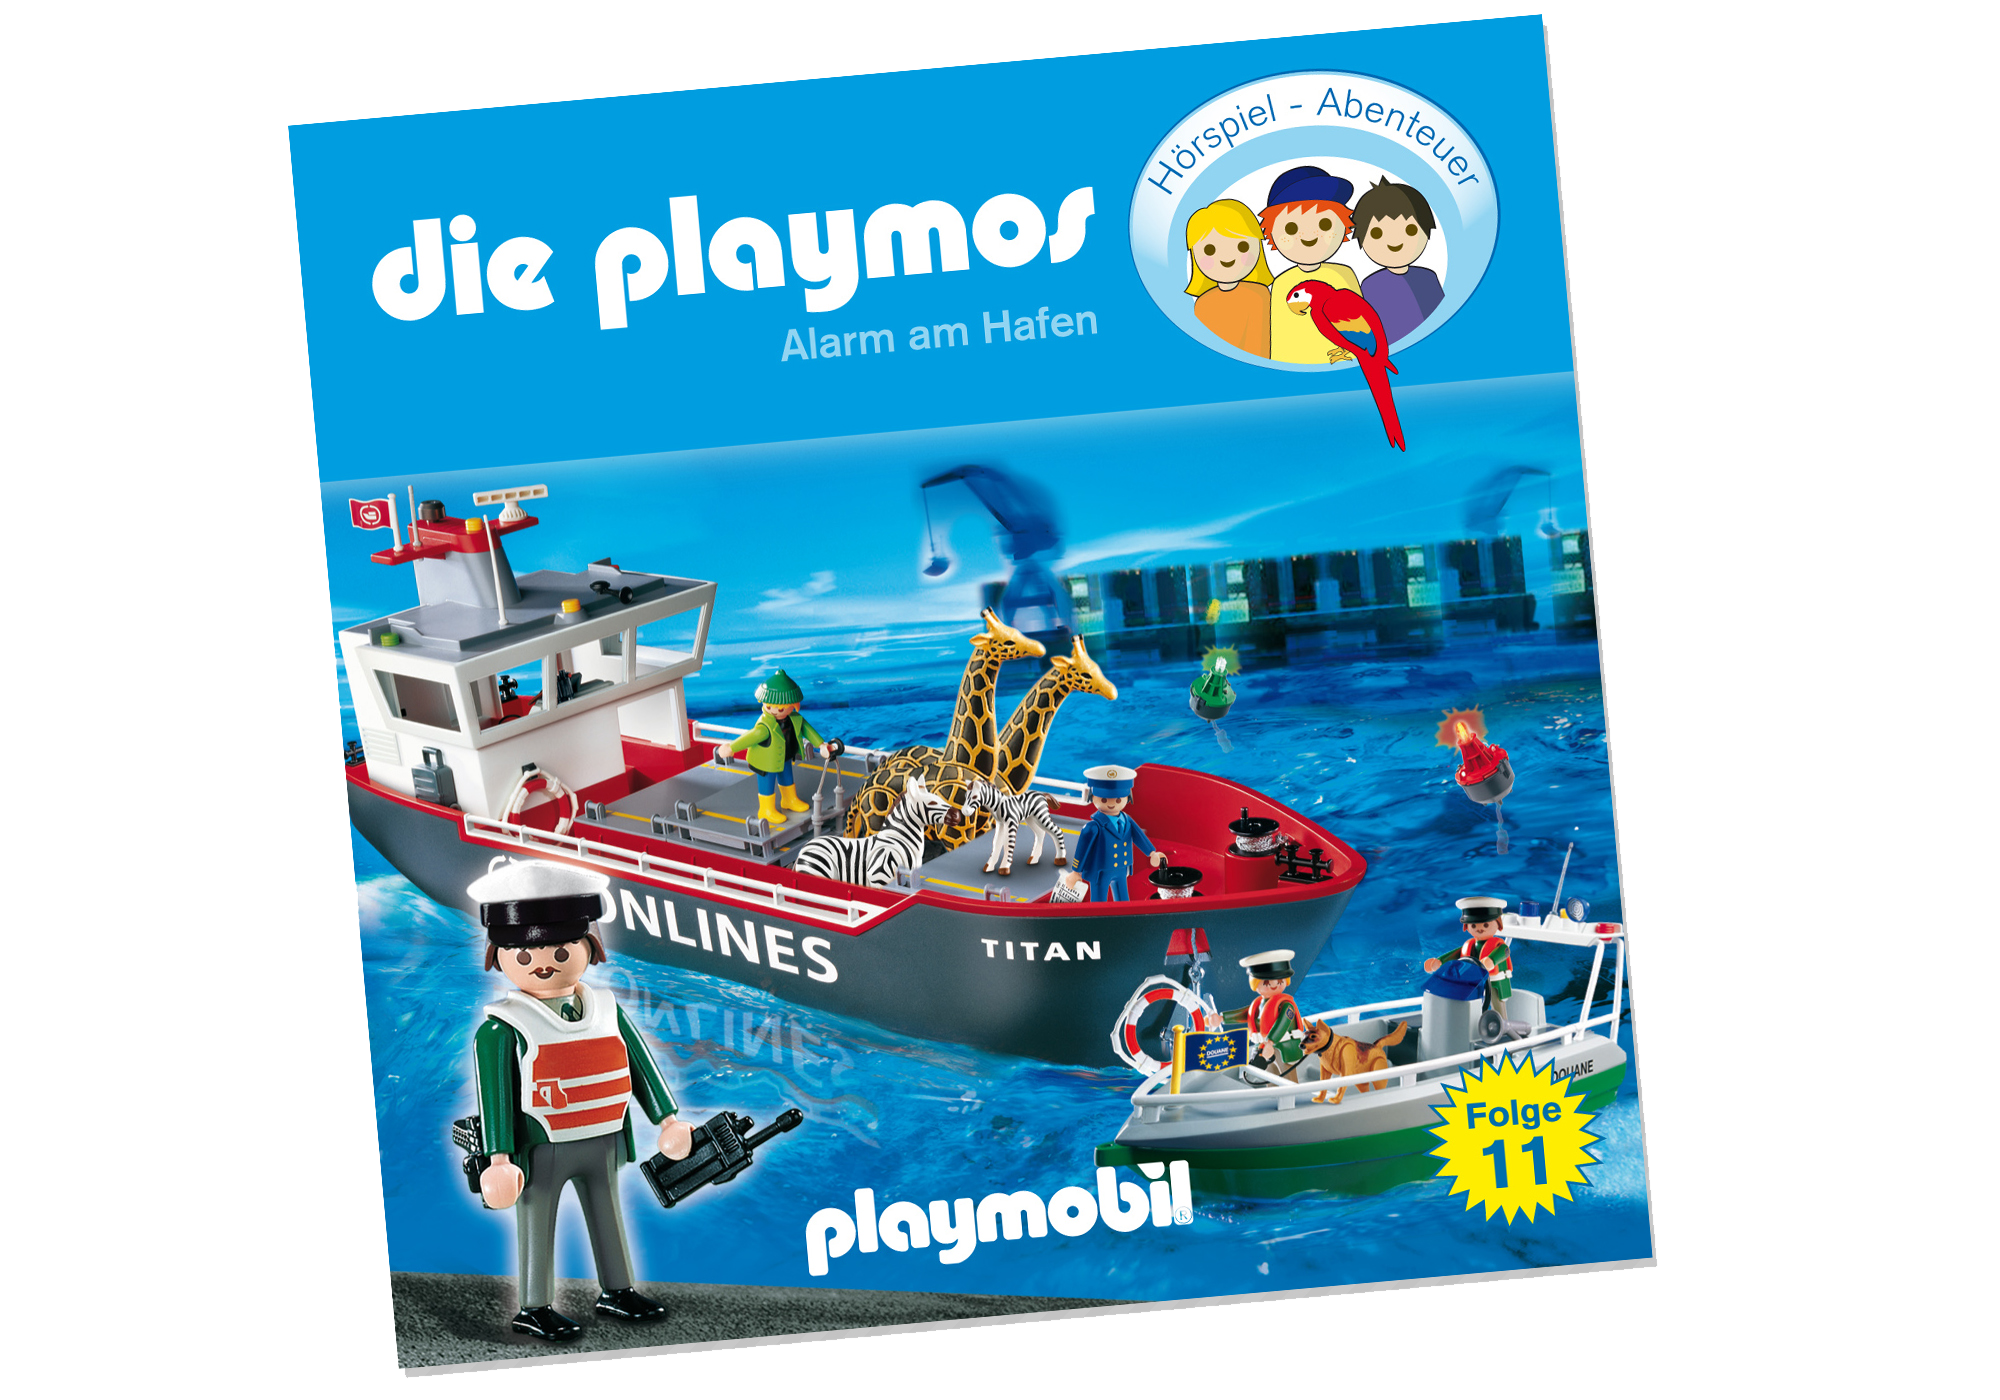 http://media.playmobil.com/i/playmobil/80198_product_detail